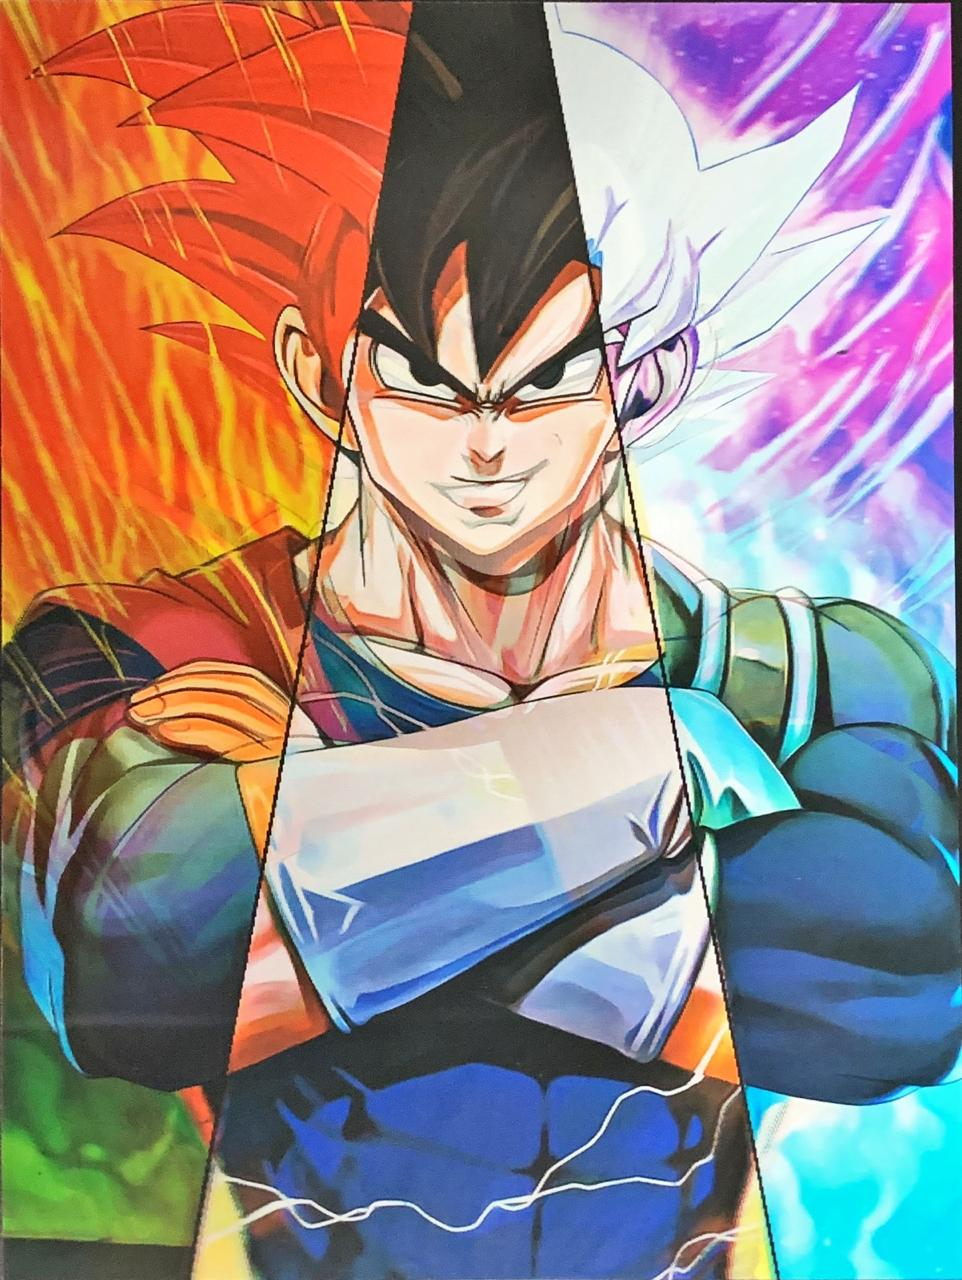 Quadro 3D Lenticular: Goku & Vegeta: Dragon Ball Z (40x30)